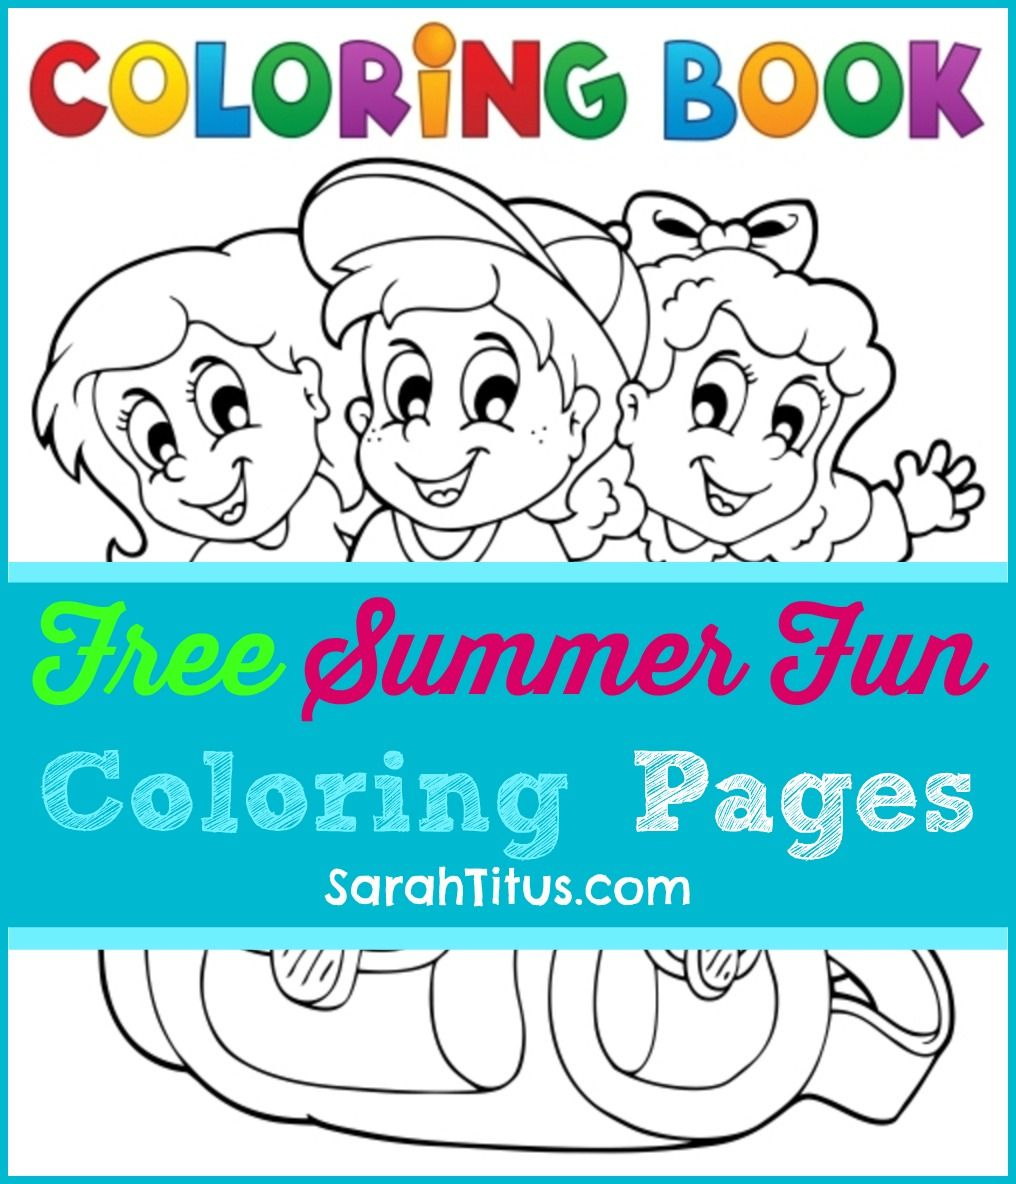 Summer crafts coloring pages - Free Summer Fun Coloring Pages For Kids